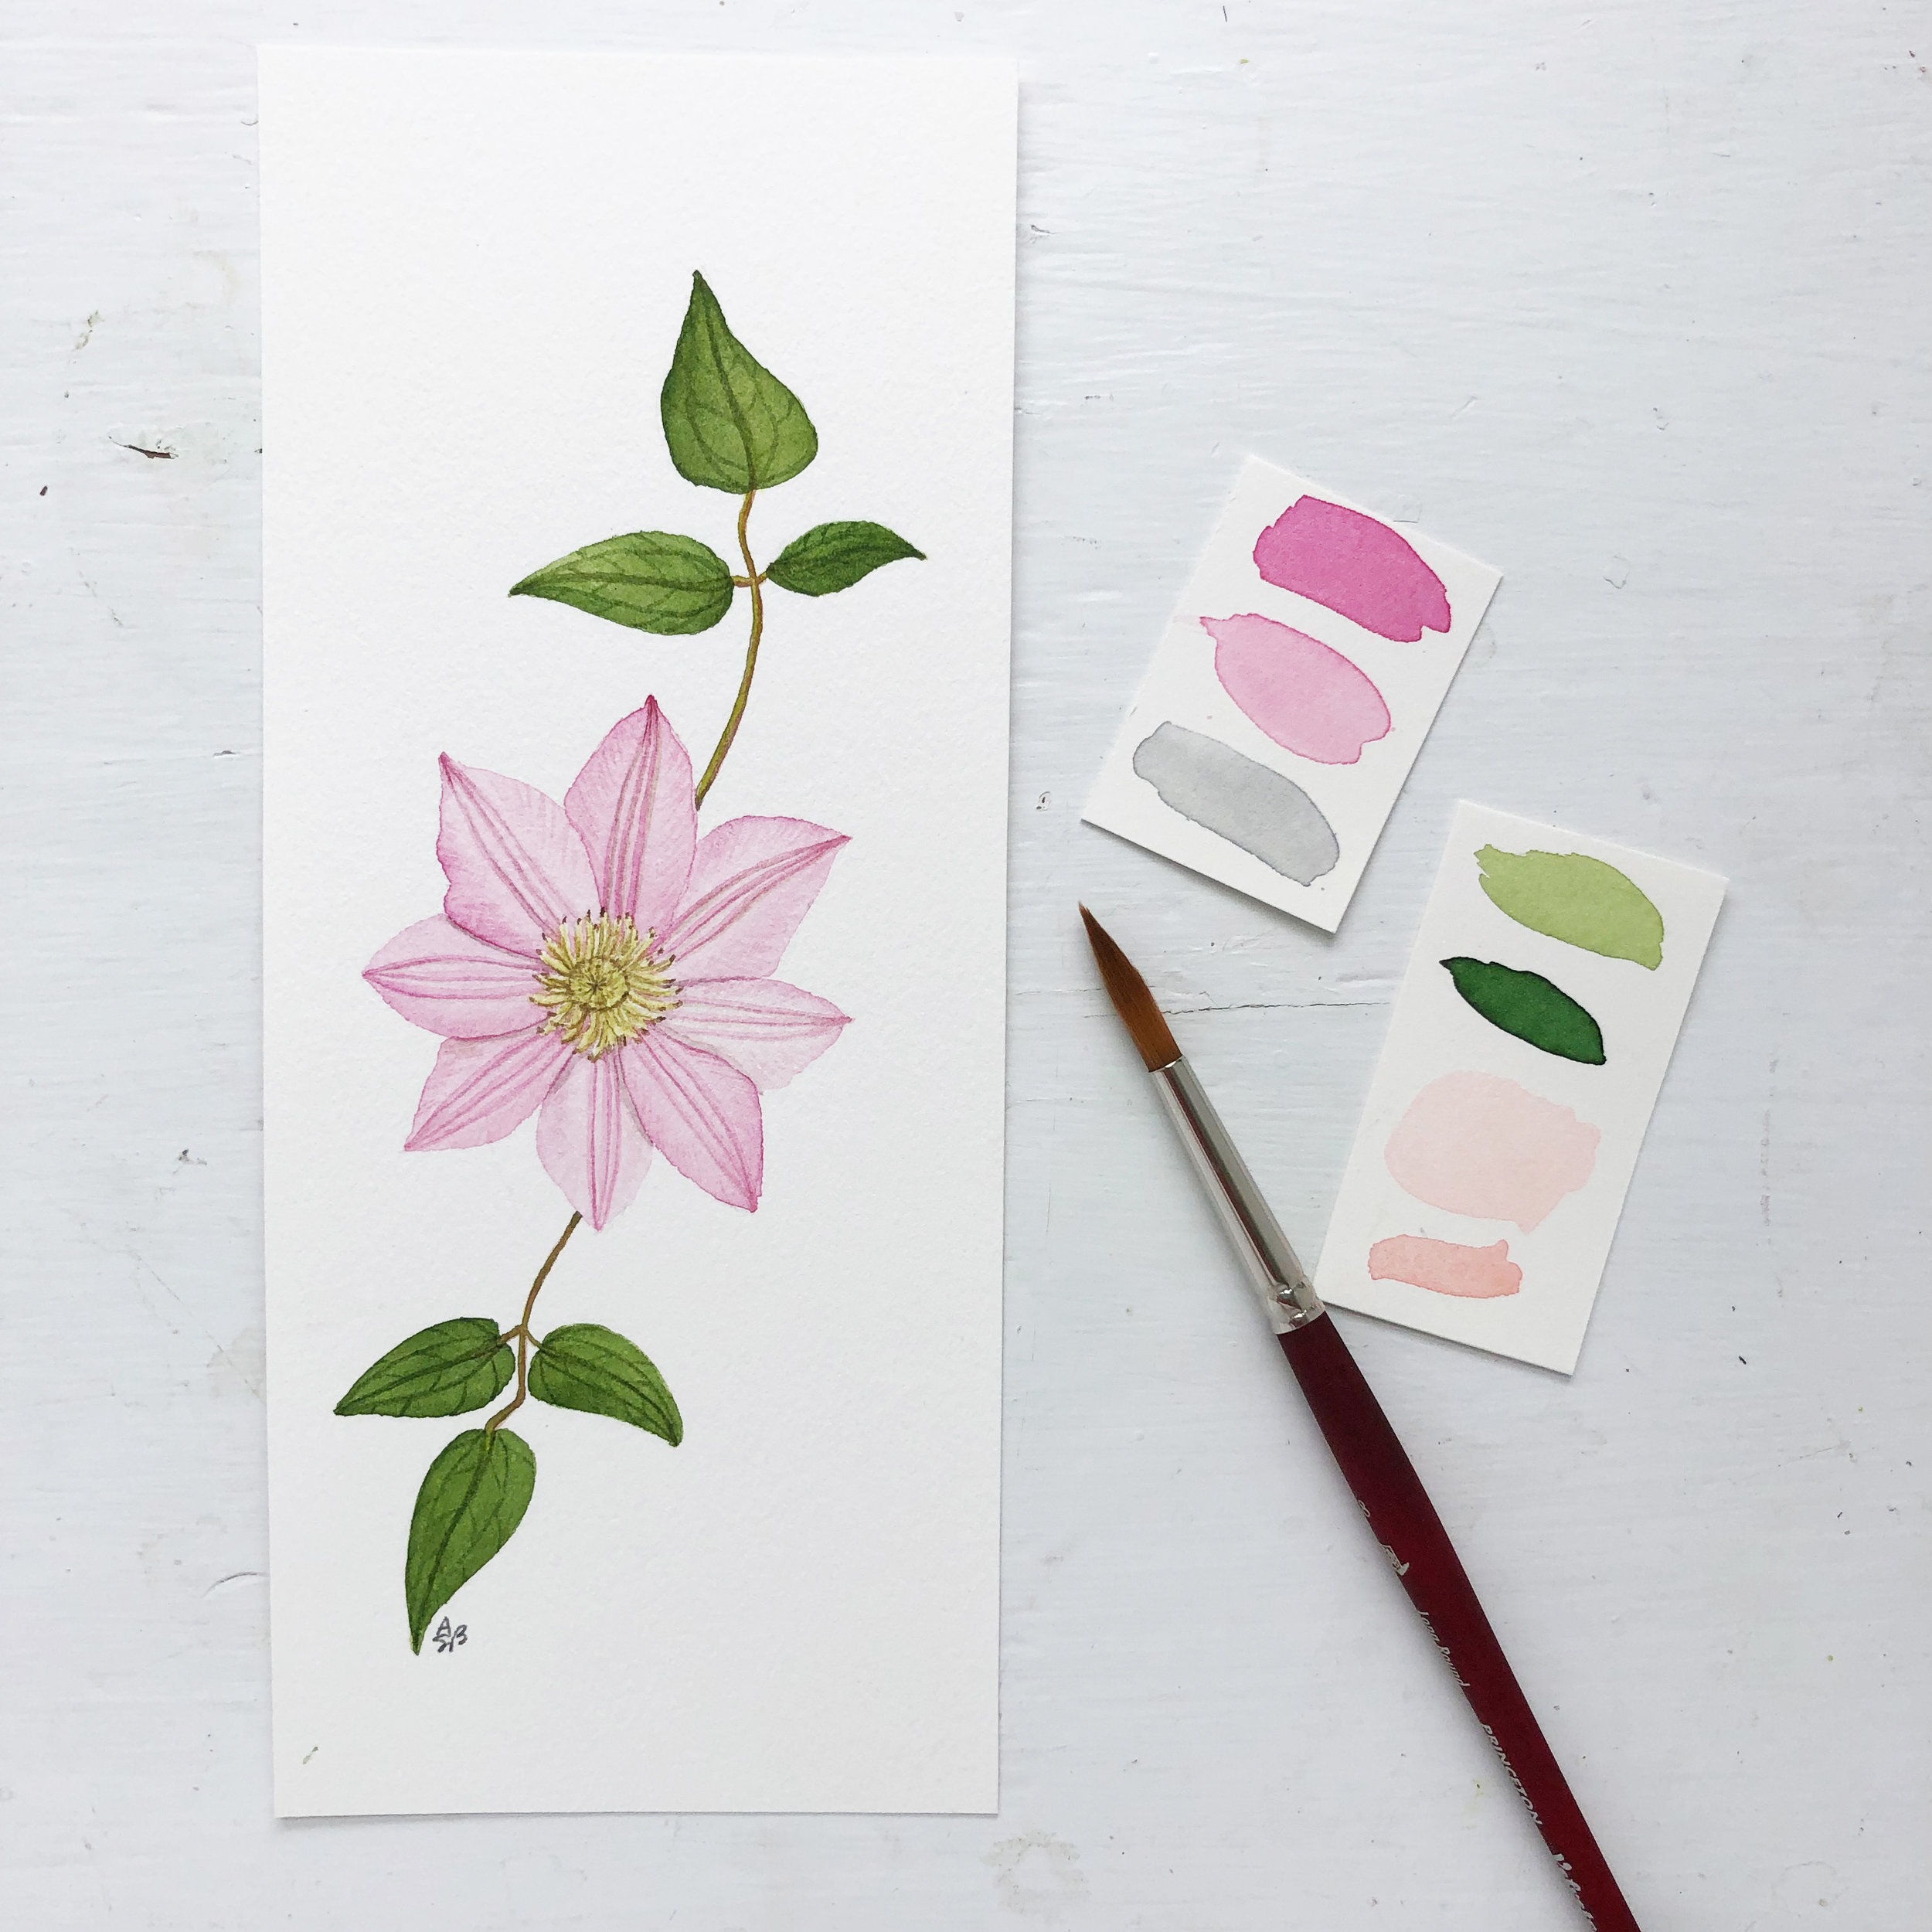 A Botanical Watercolor Illustration of a Clematis Flower Painted by Anne Butera